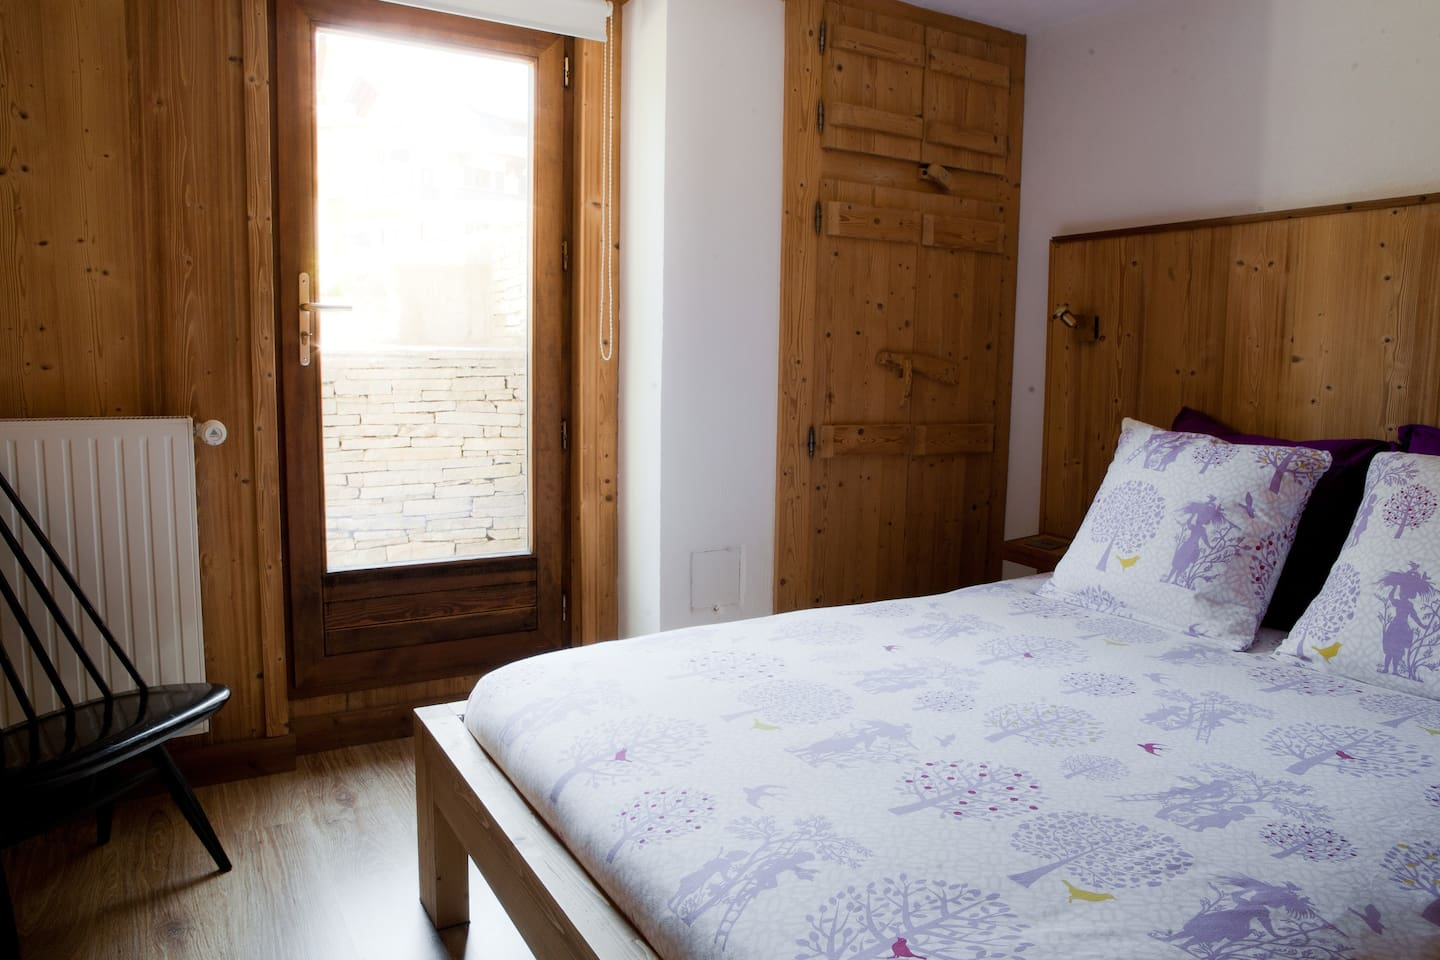 Comfy Central Apartment in the Alps - Apartamentos para Alugar em Les  Houches, Ródano-Alpes, França